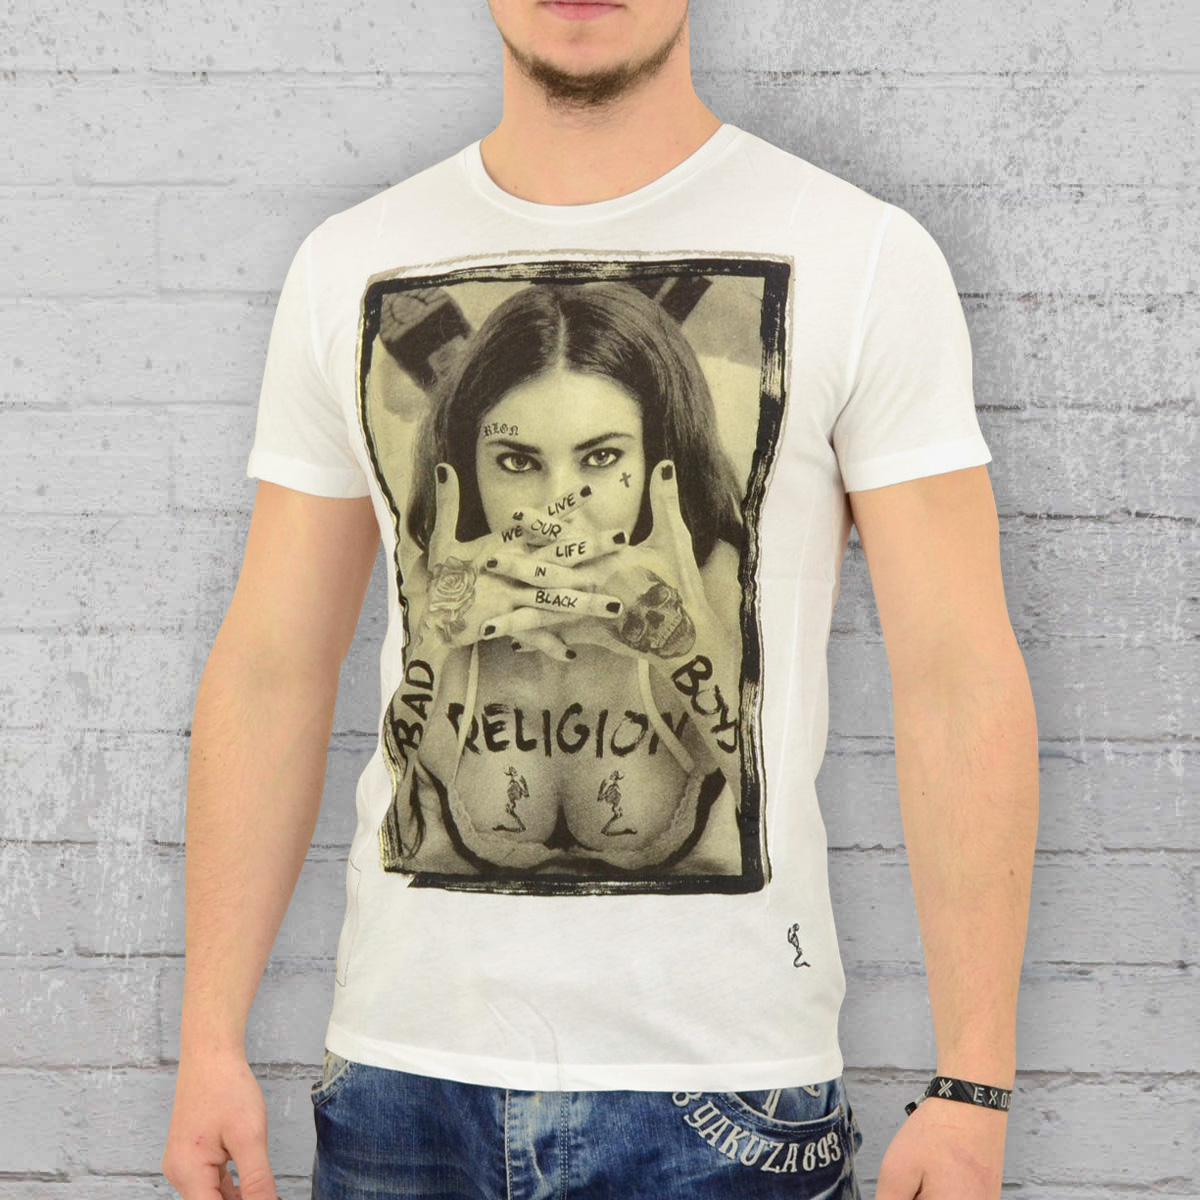 Order Now Religion Clothing T Shirt Gents Bad Boys White